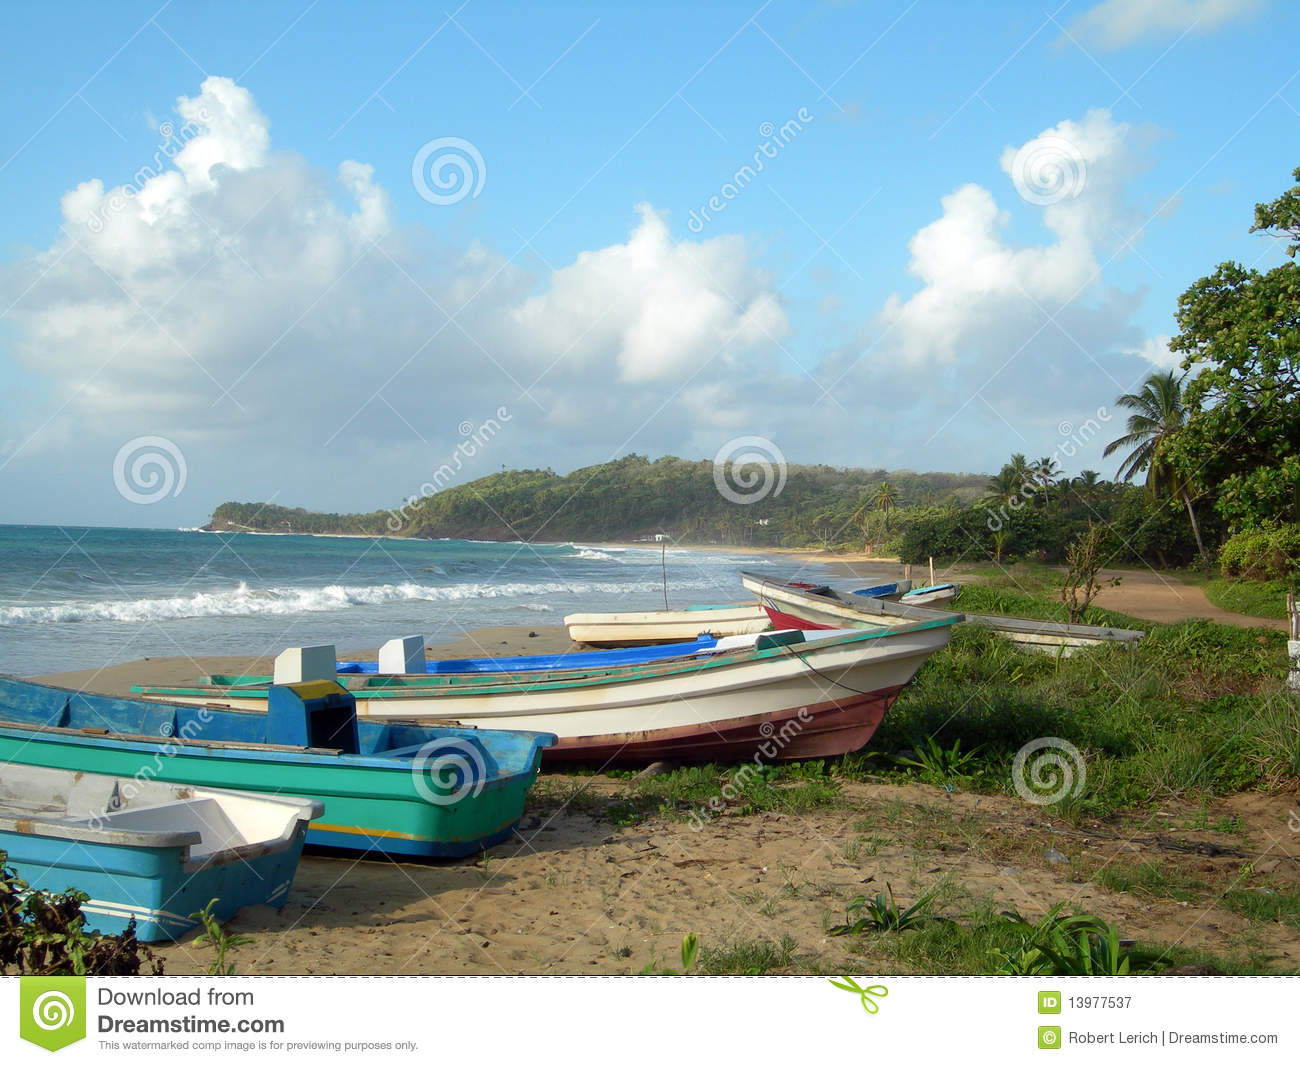 Fishing boat long bay beach corn island nicaragua royalty for Long beach fishing boat